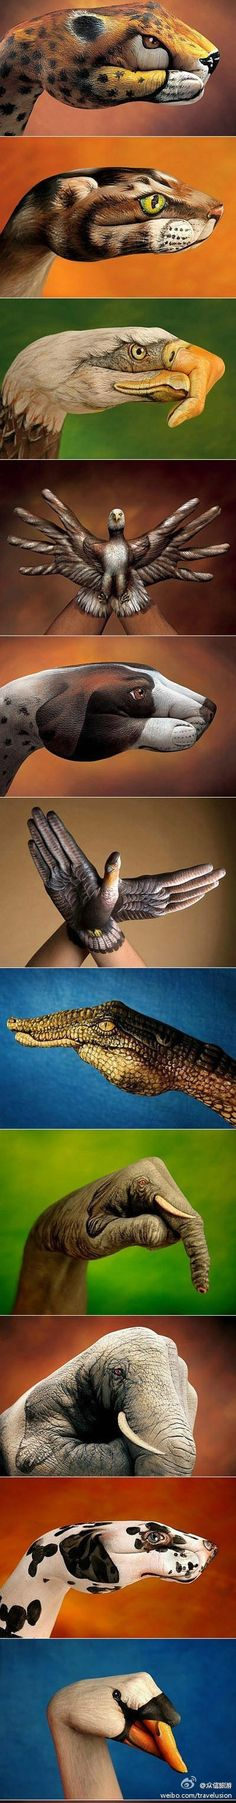 Hand Paint - body art using hands Wow Art, Hand Art, Looks Cool, Oeuvre D'art, Les Oeuvres, Amazing Art, Cool Pictures, Art Drawings, Art Photography